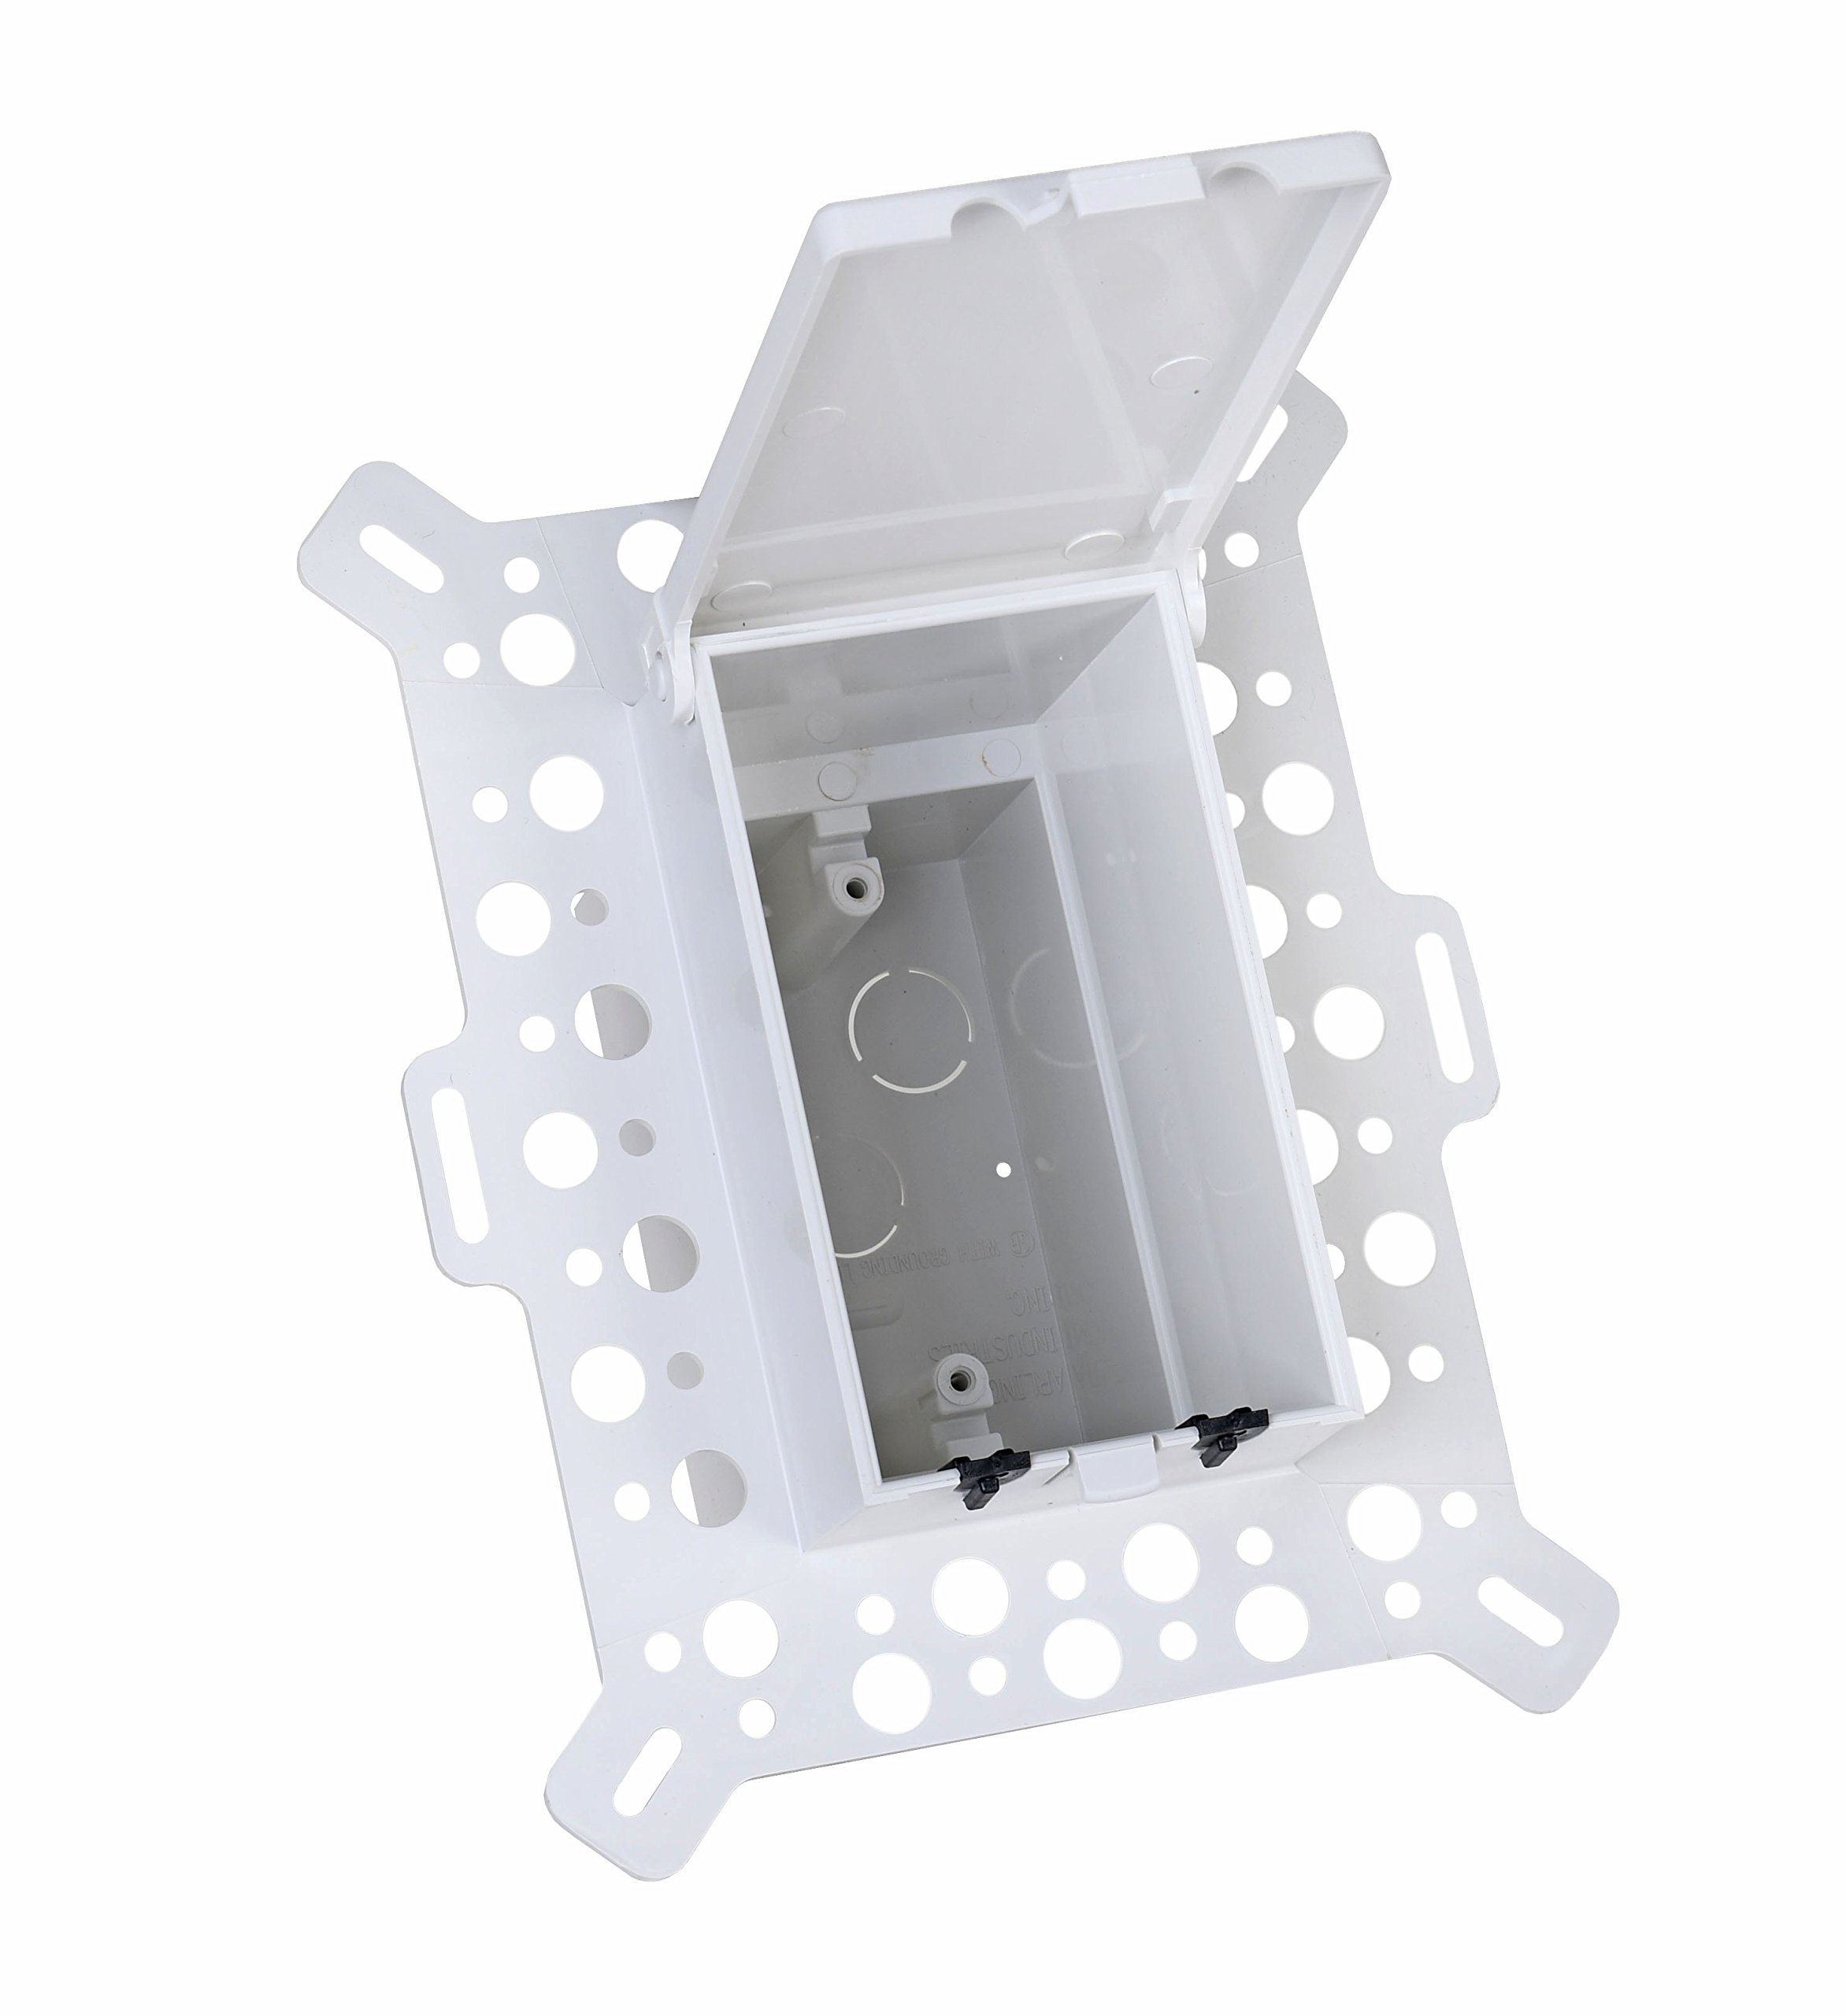 Arlington DBVM1W-1 Low Profile IN BOX Electrical Box with Weatherproof Cover for New Construction Stucco/Textured Surfaces/Rigid Siding, Vertical, 1-Gang, White by Arlington Industries